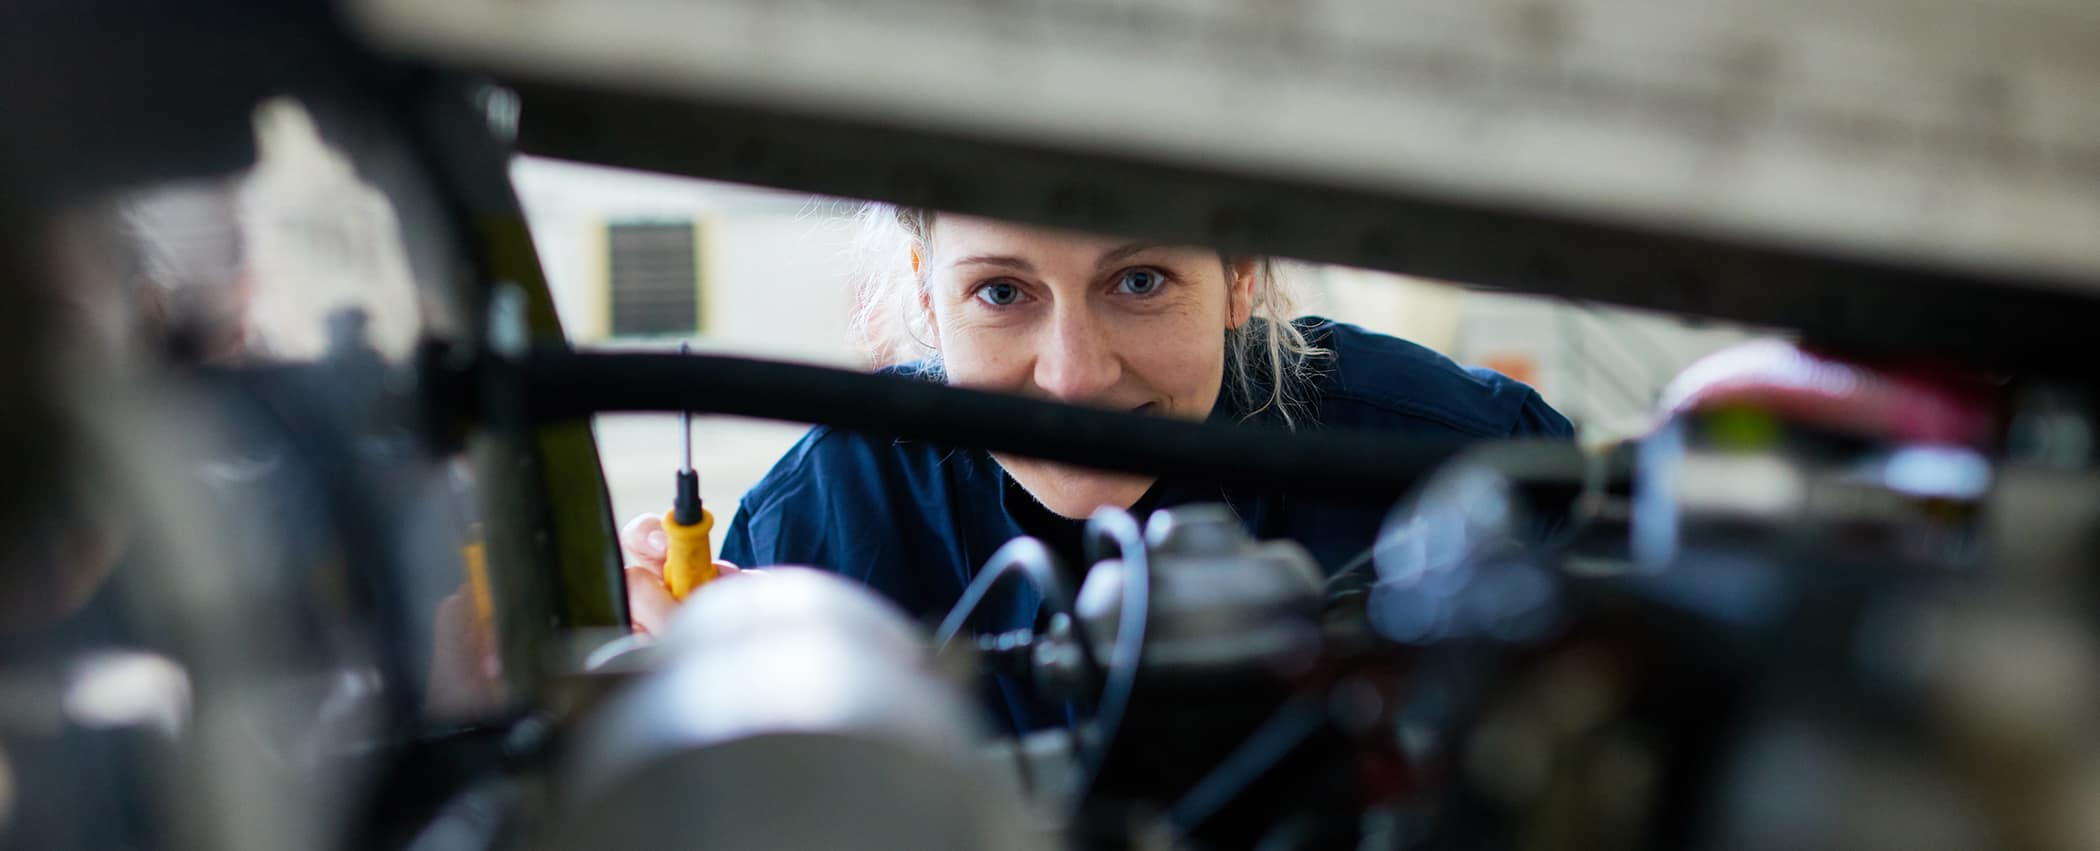 a female engineer looks over a plane engine